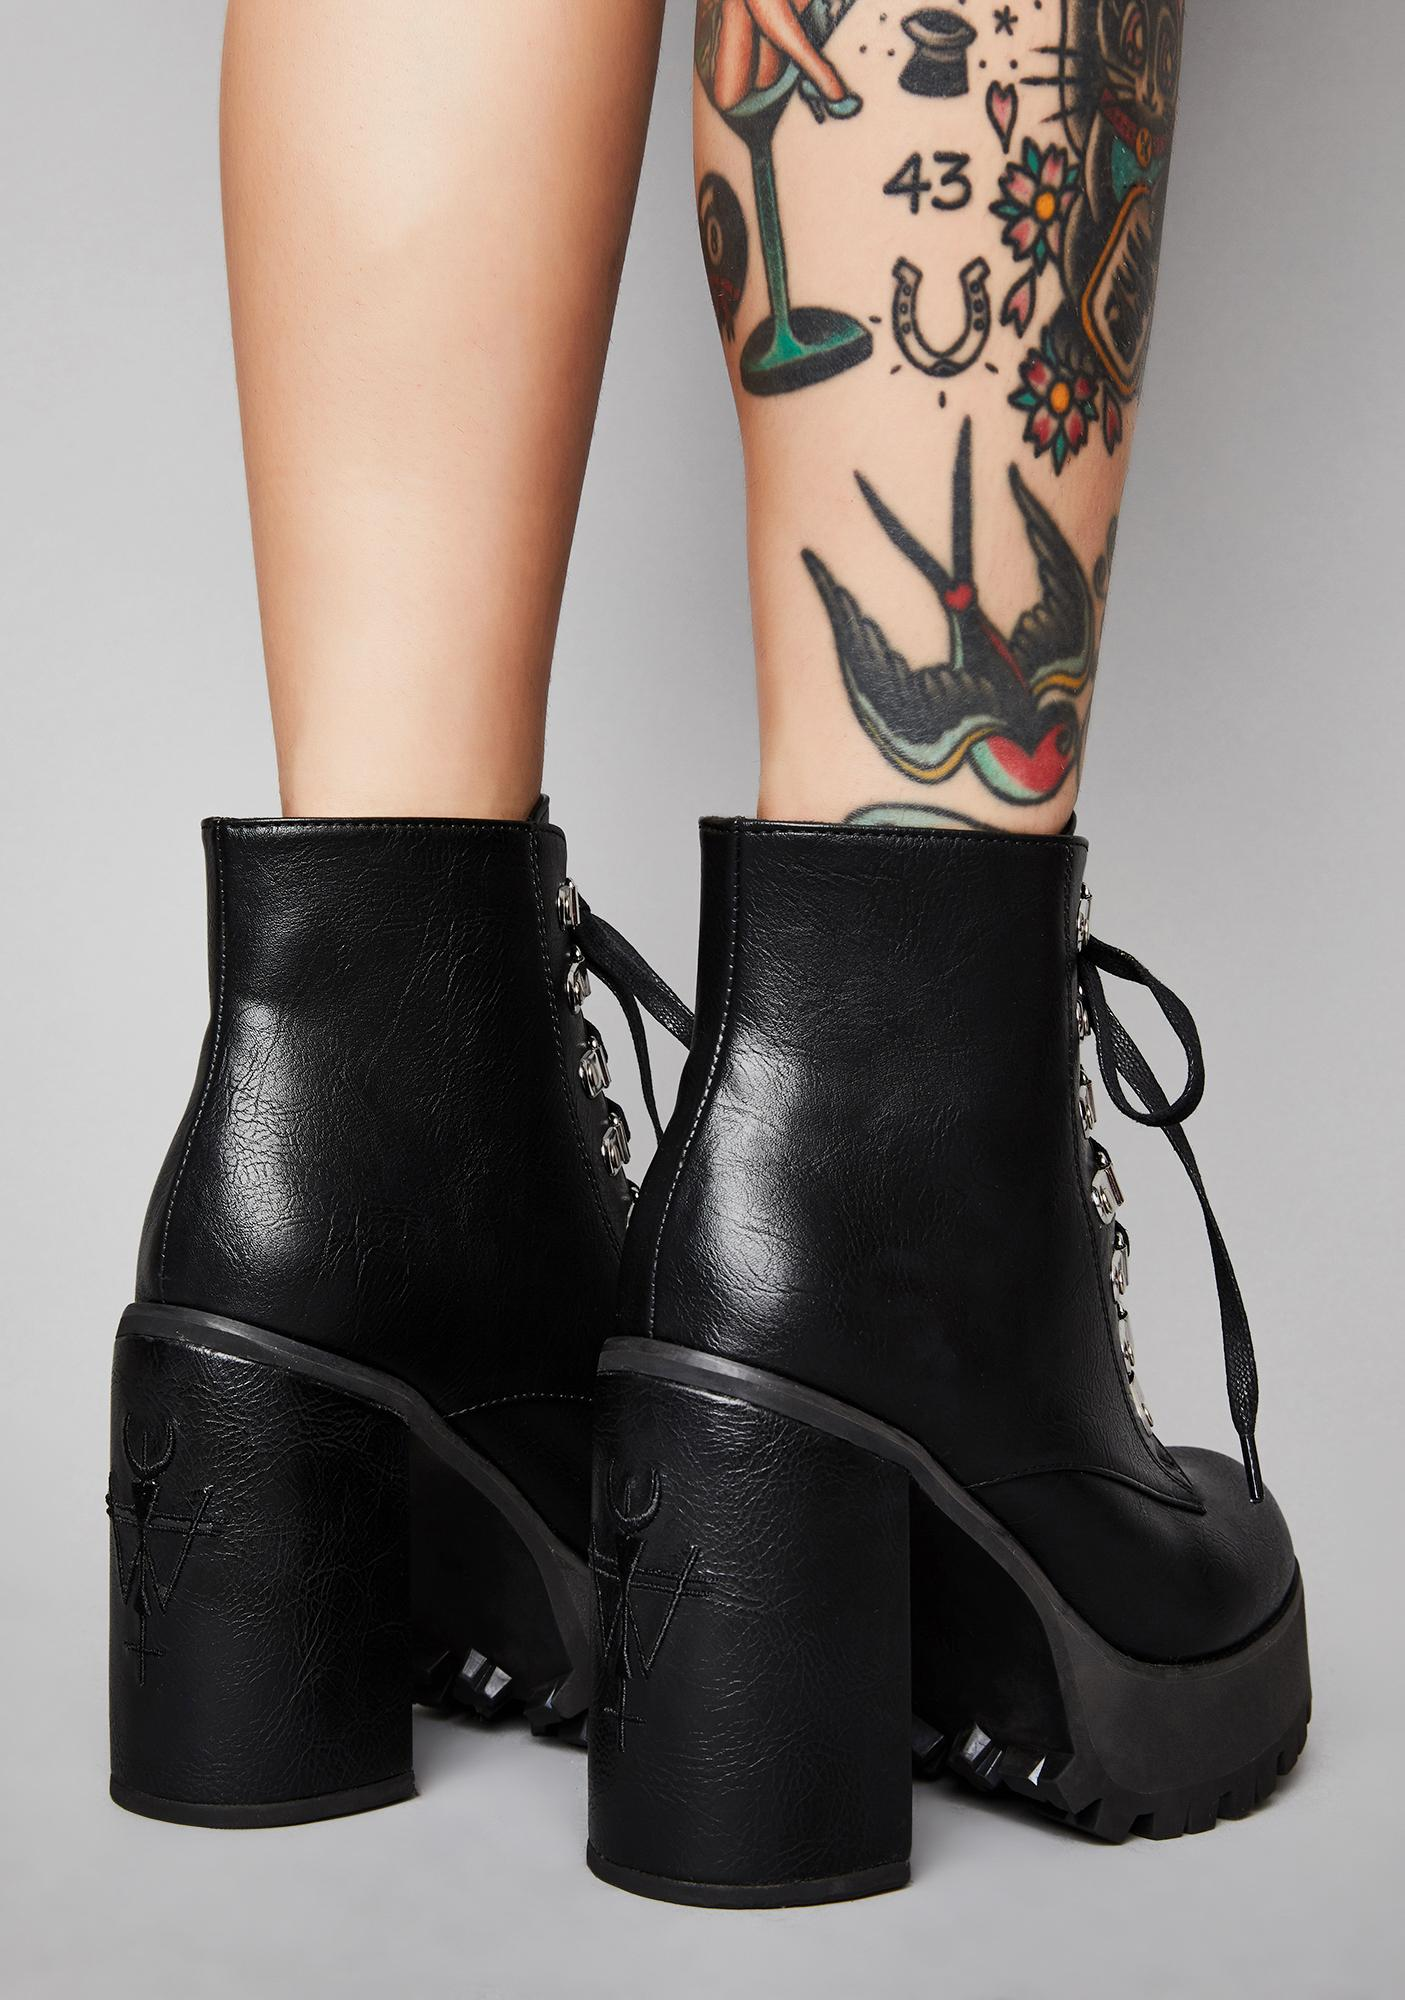 Widow Dante's Inferno Ankle Boots